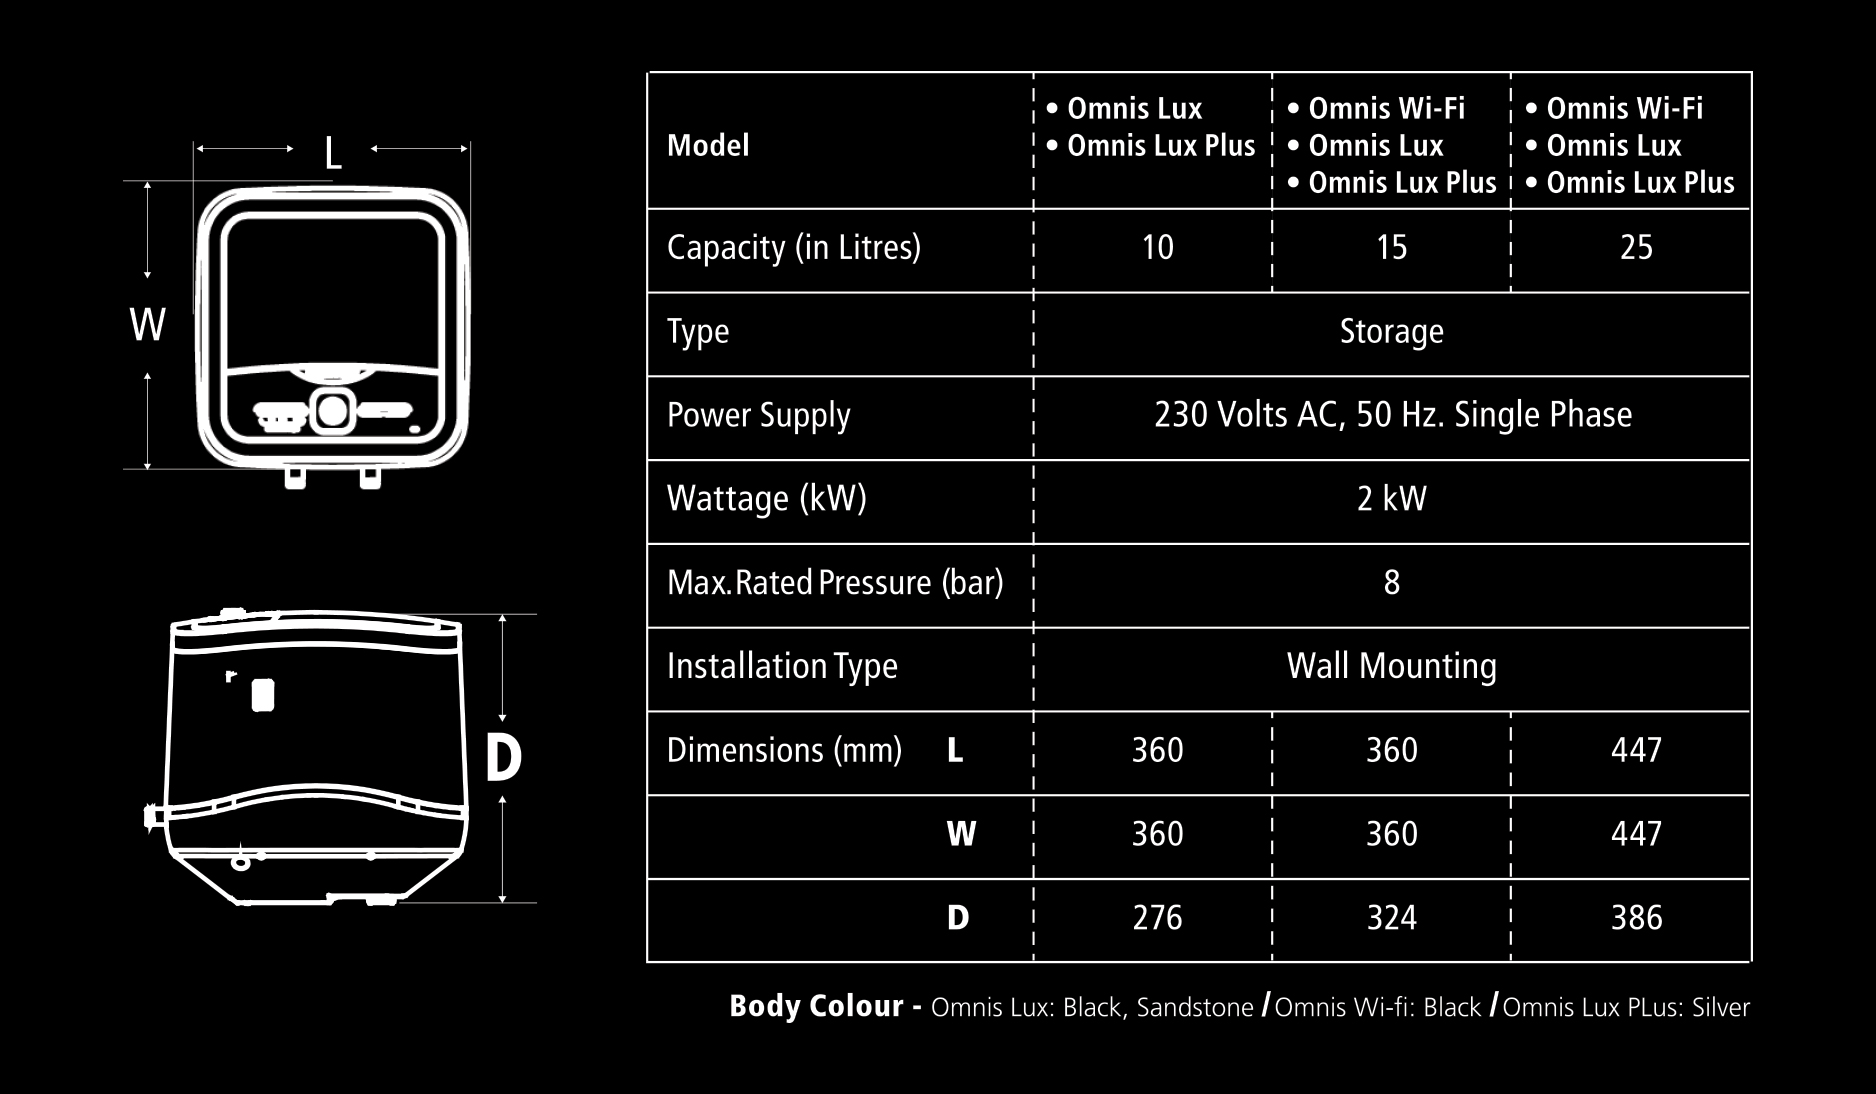 Omnis Wi-Fi Electric Storage Water Heater's Capacity & Dimensions